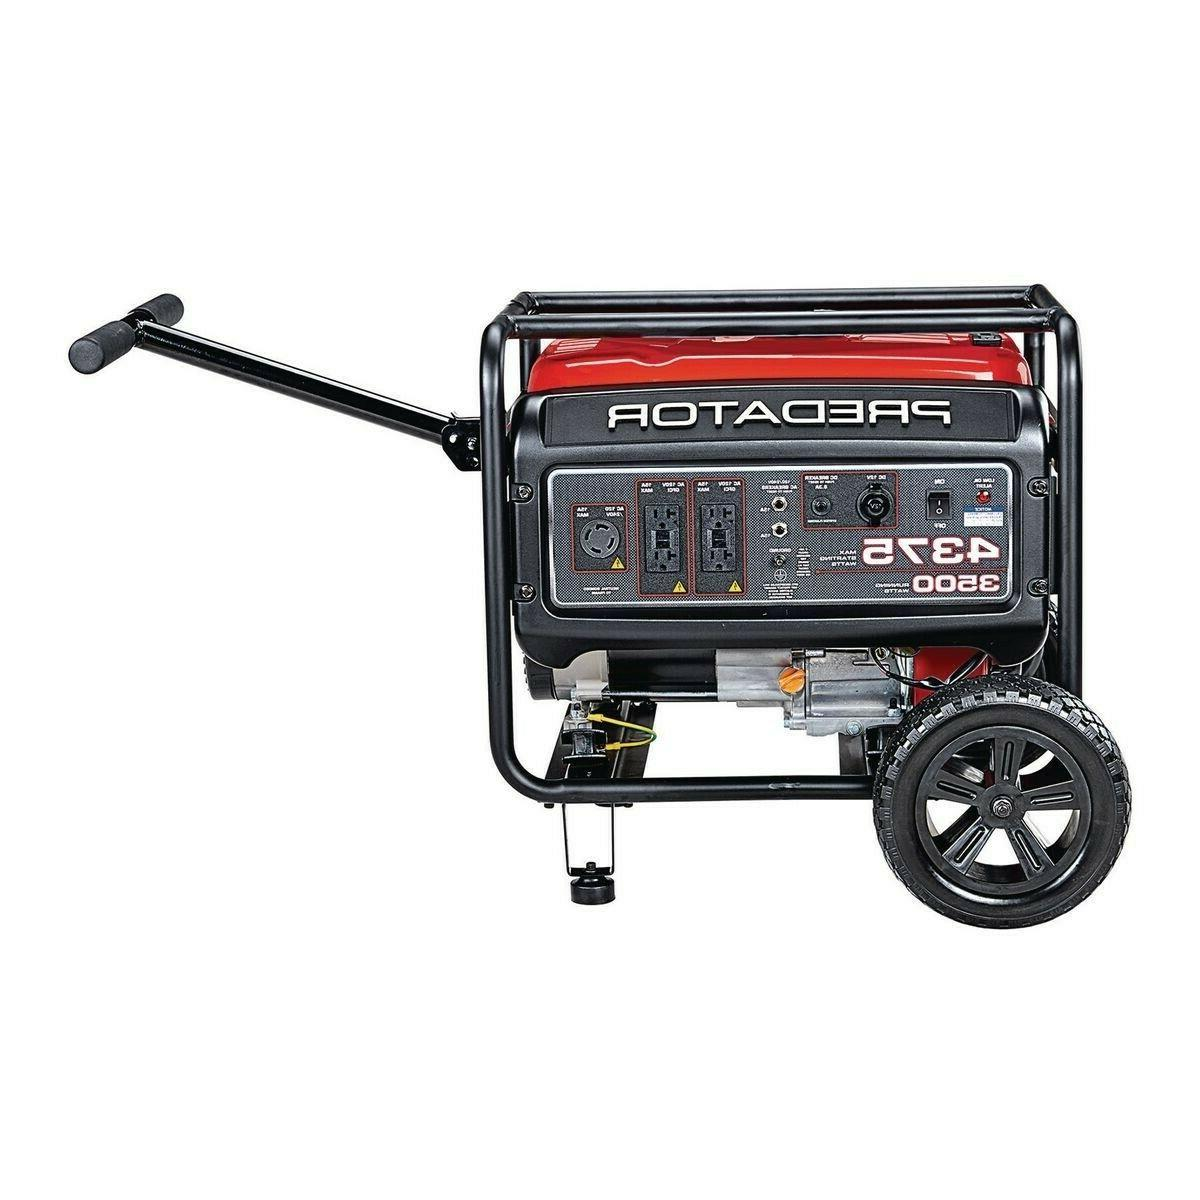 PREDATOR Watt Starting Life Gas Powered Generator